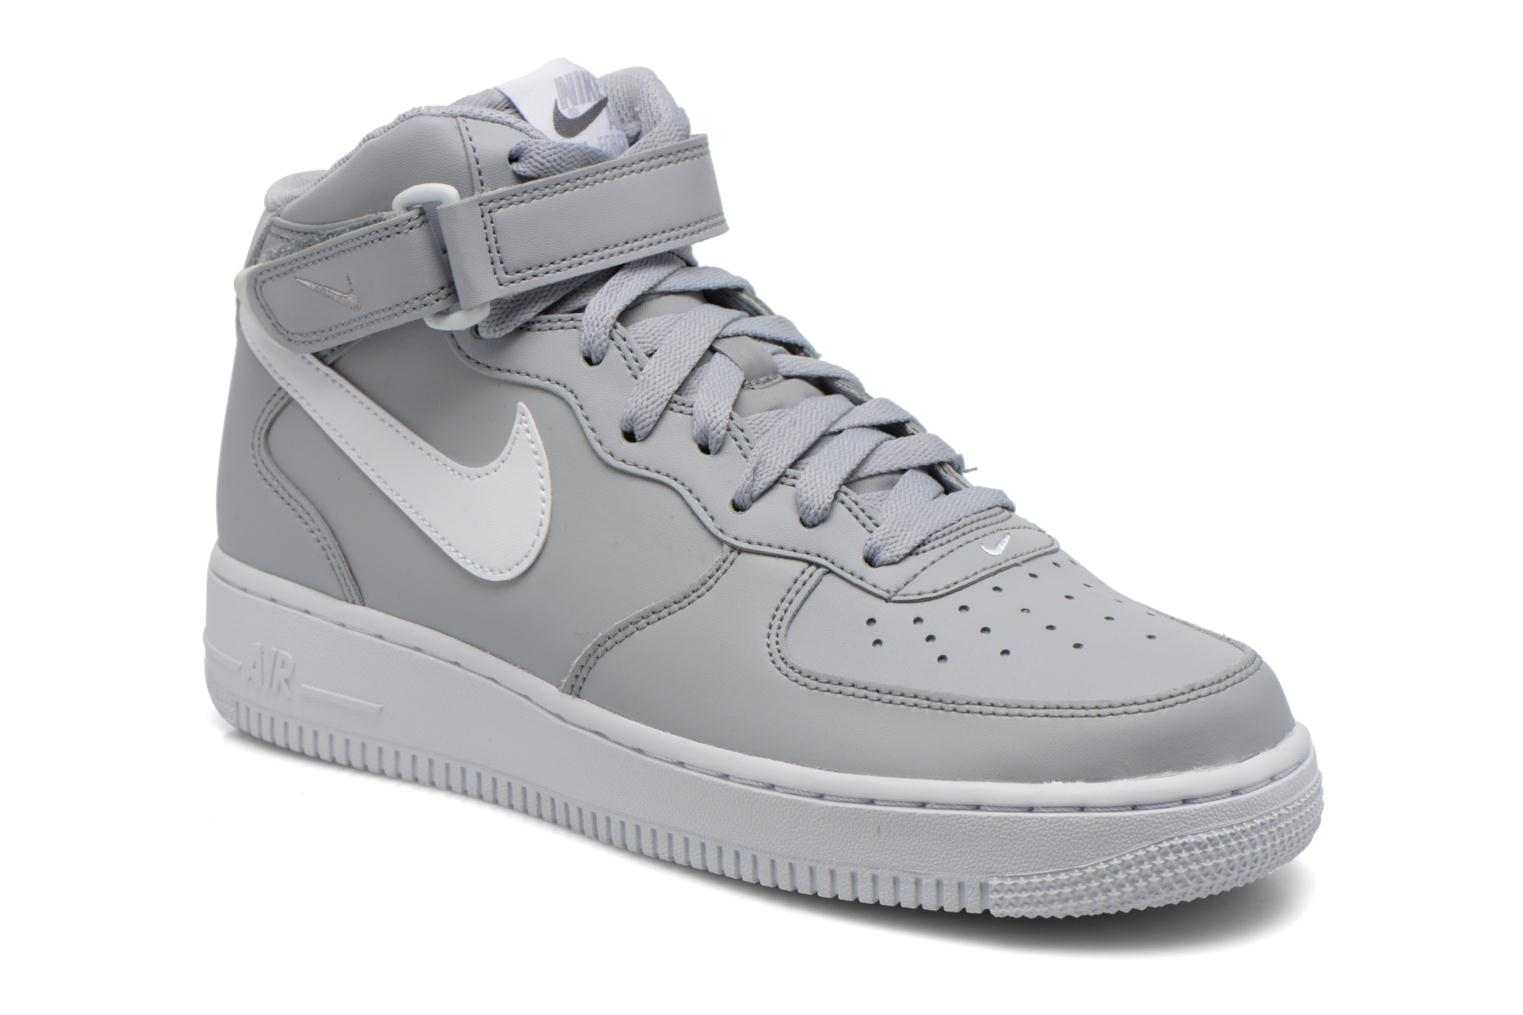 Nike Air Force 1 Mid Gris 3J5cAO